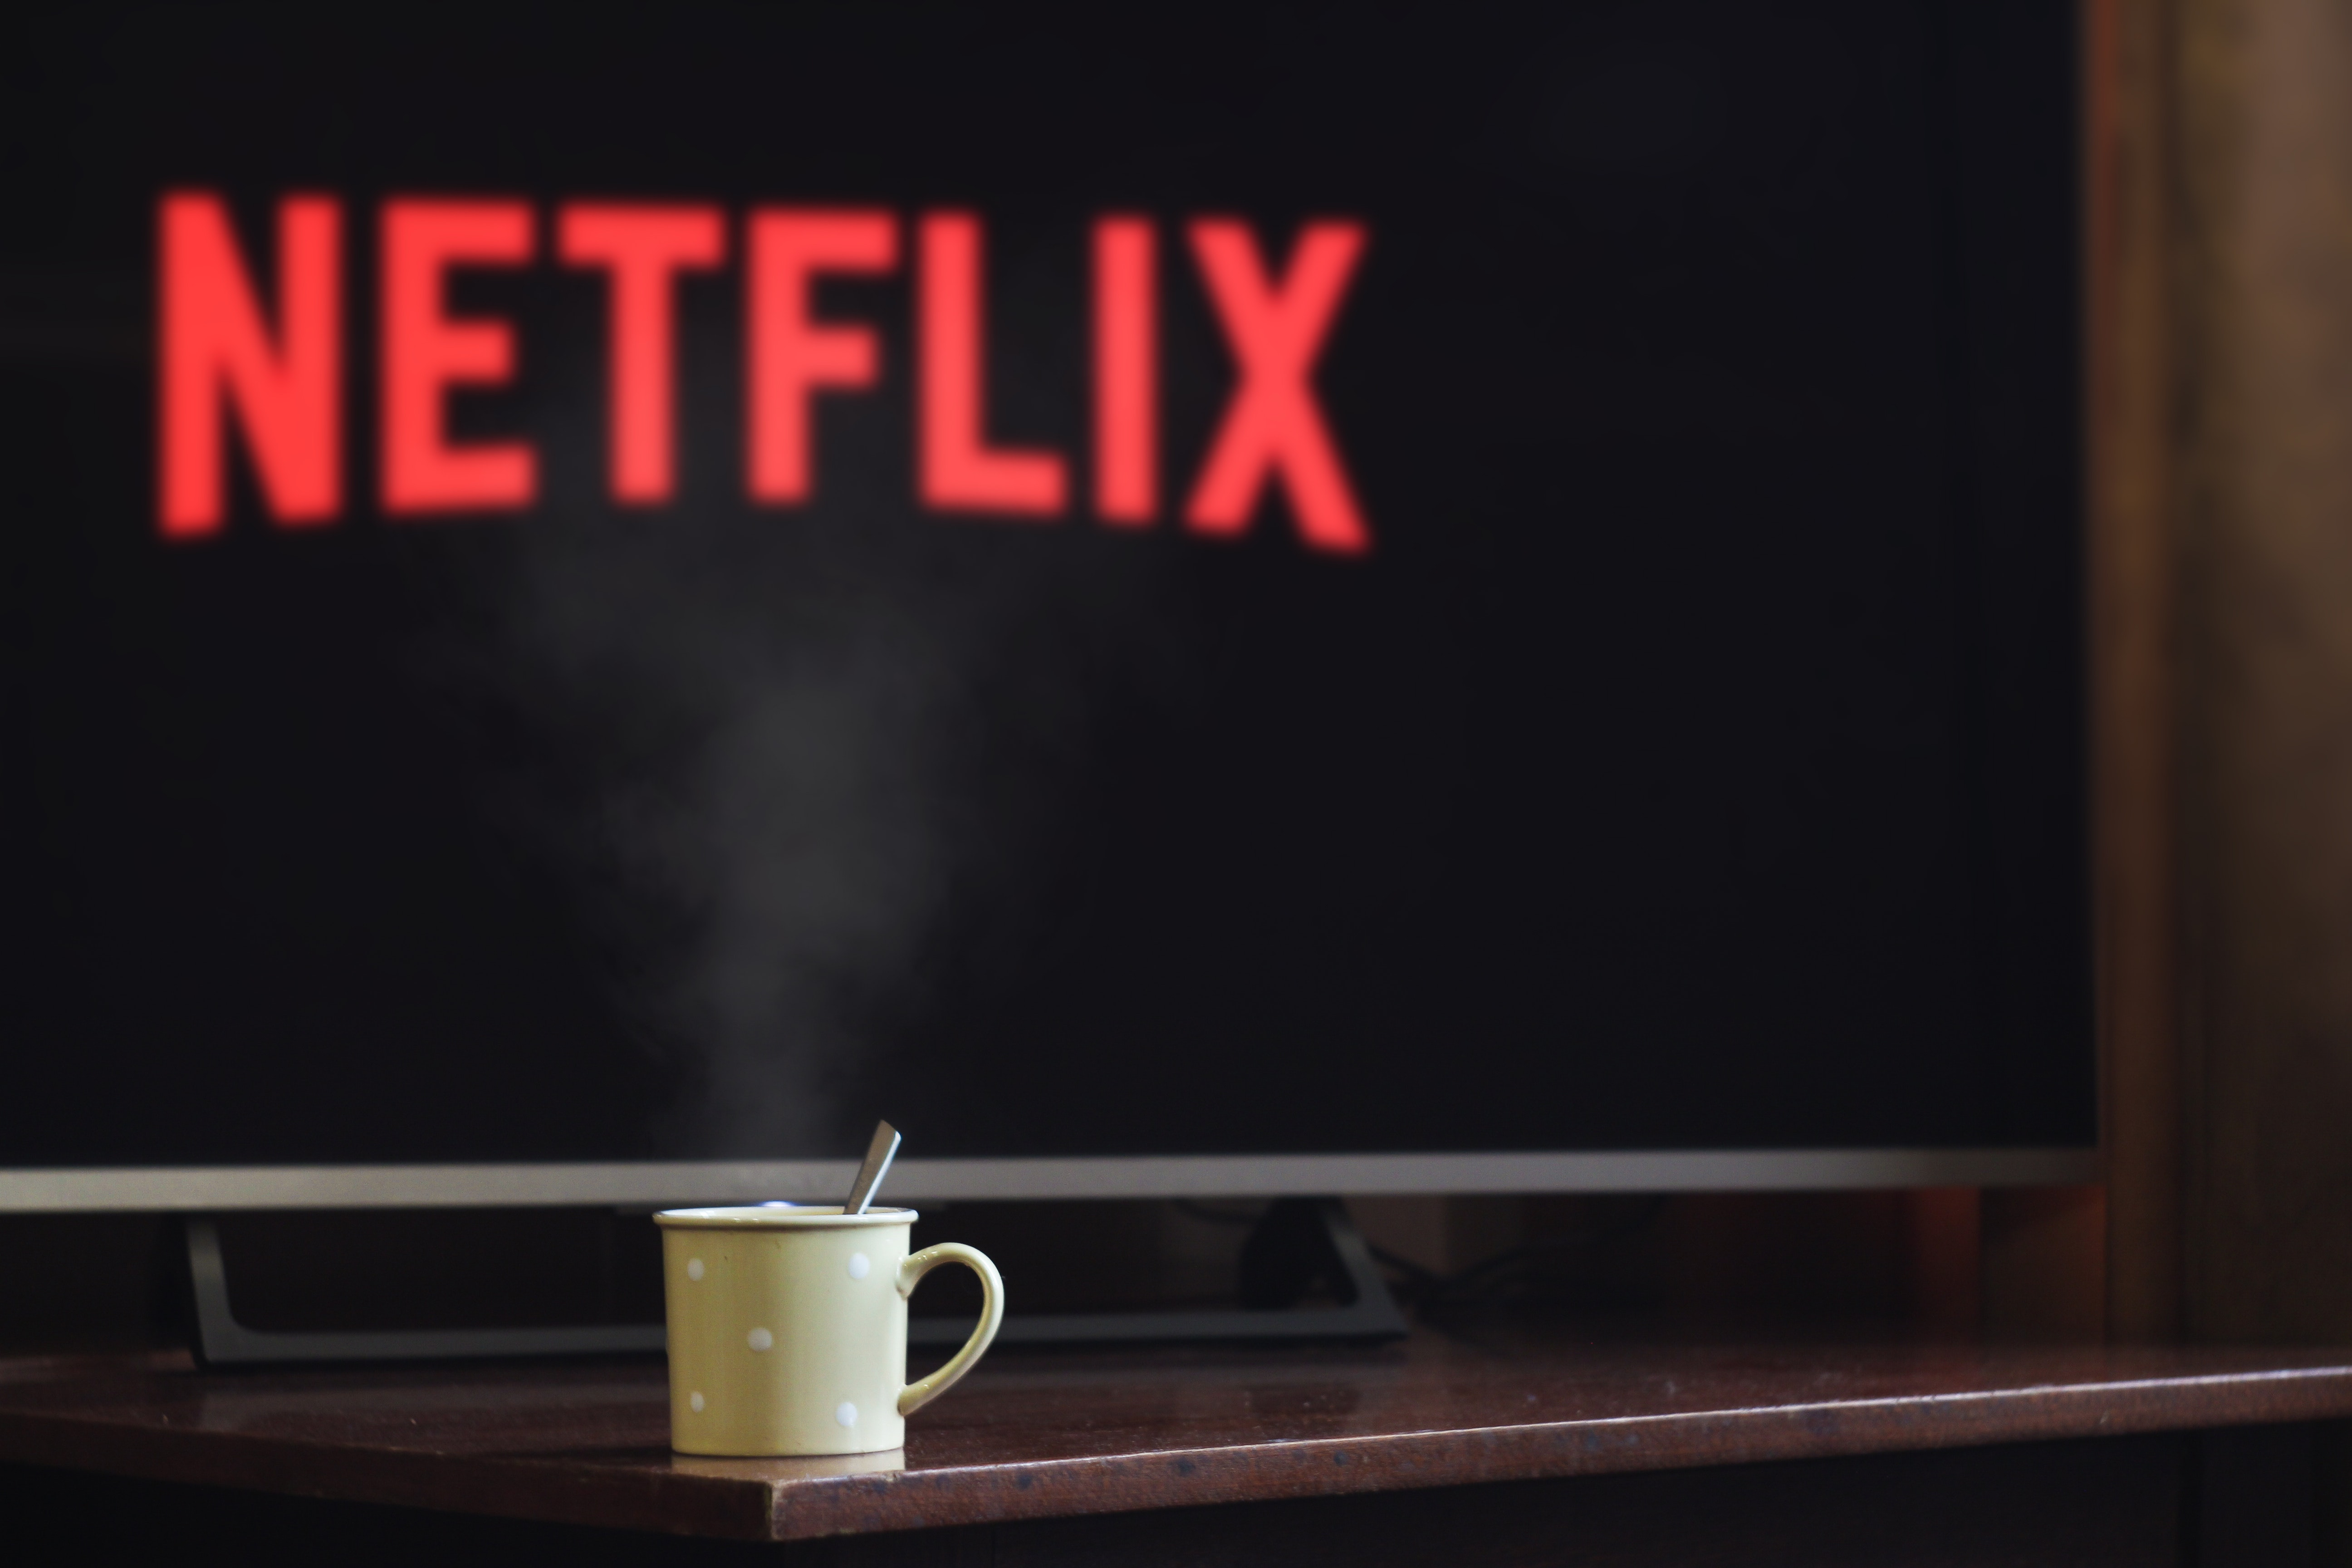 Netflix undermines willpower